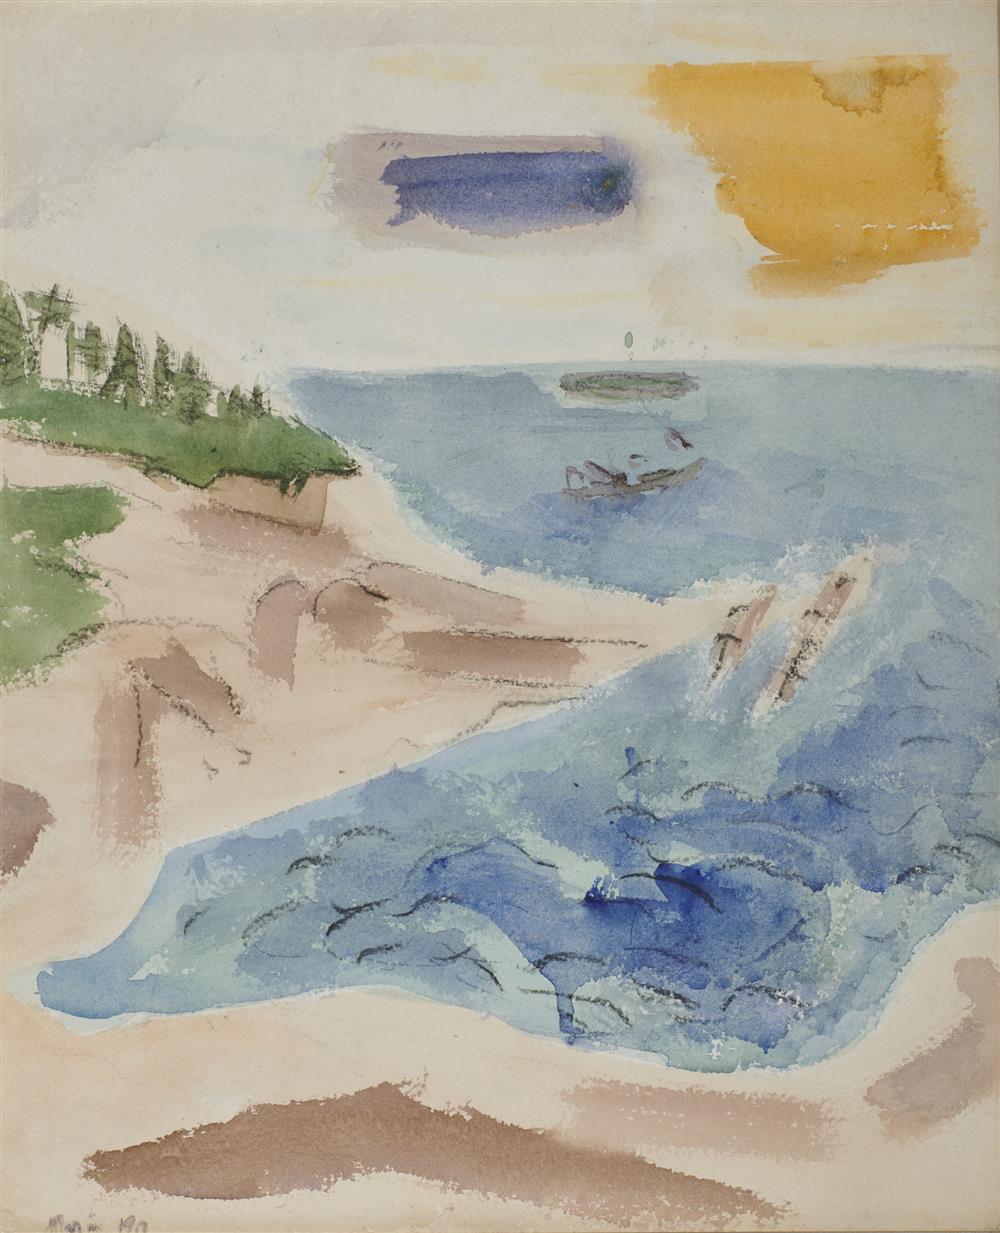 JOHN MARIN, (American, 1870-1953), Sea and Rocks, Small Point, Maine, 1917, watercolor, sheet: 19 1/2 x 16 1/4 in., frame: 24 x 21 in.